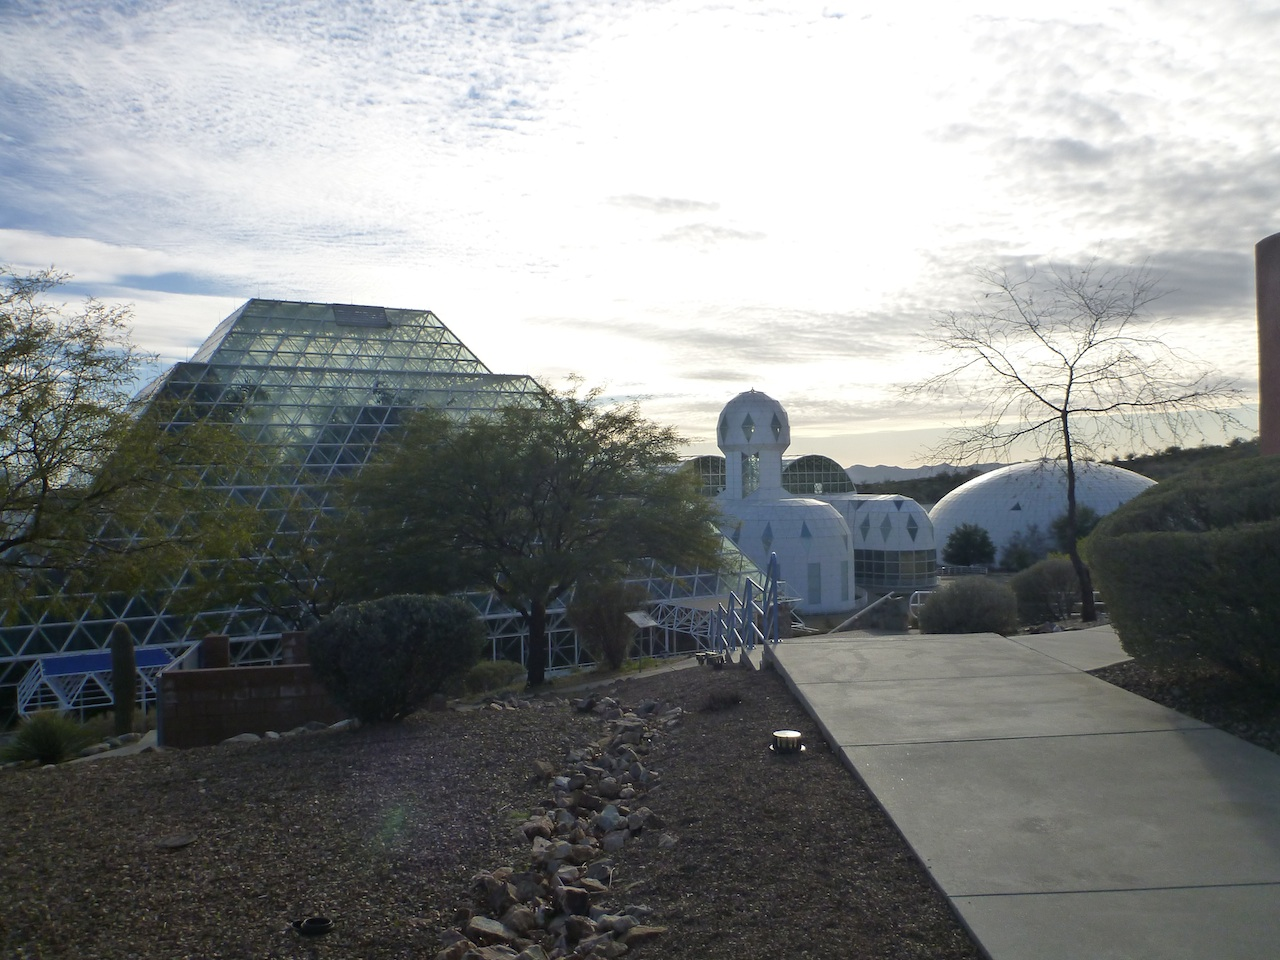 The BioSphere 2 In Oro Valley, AZ